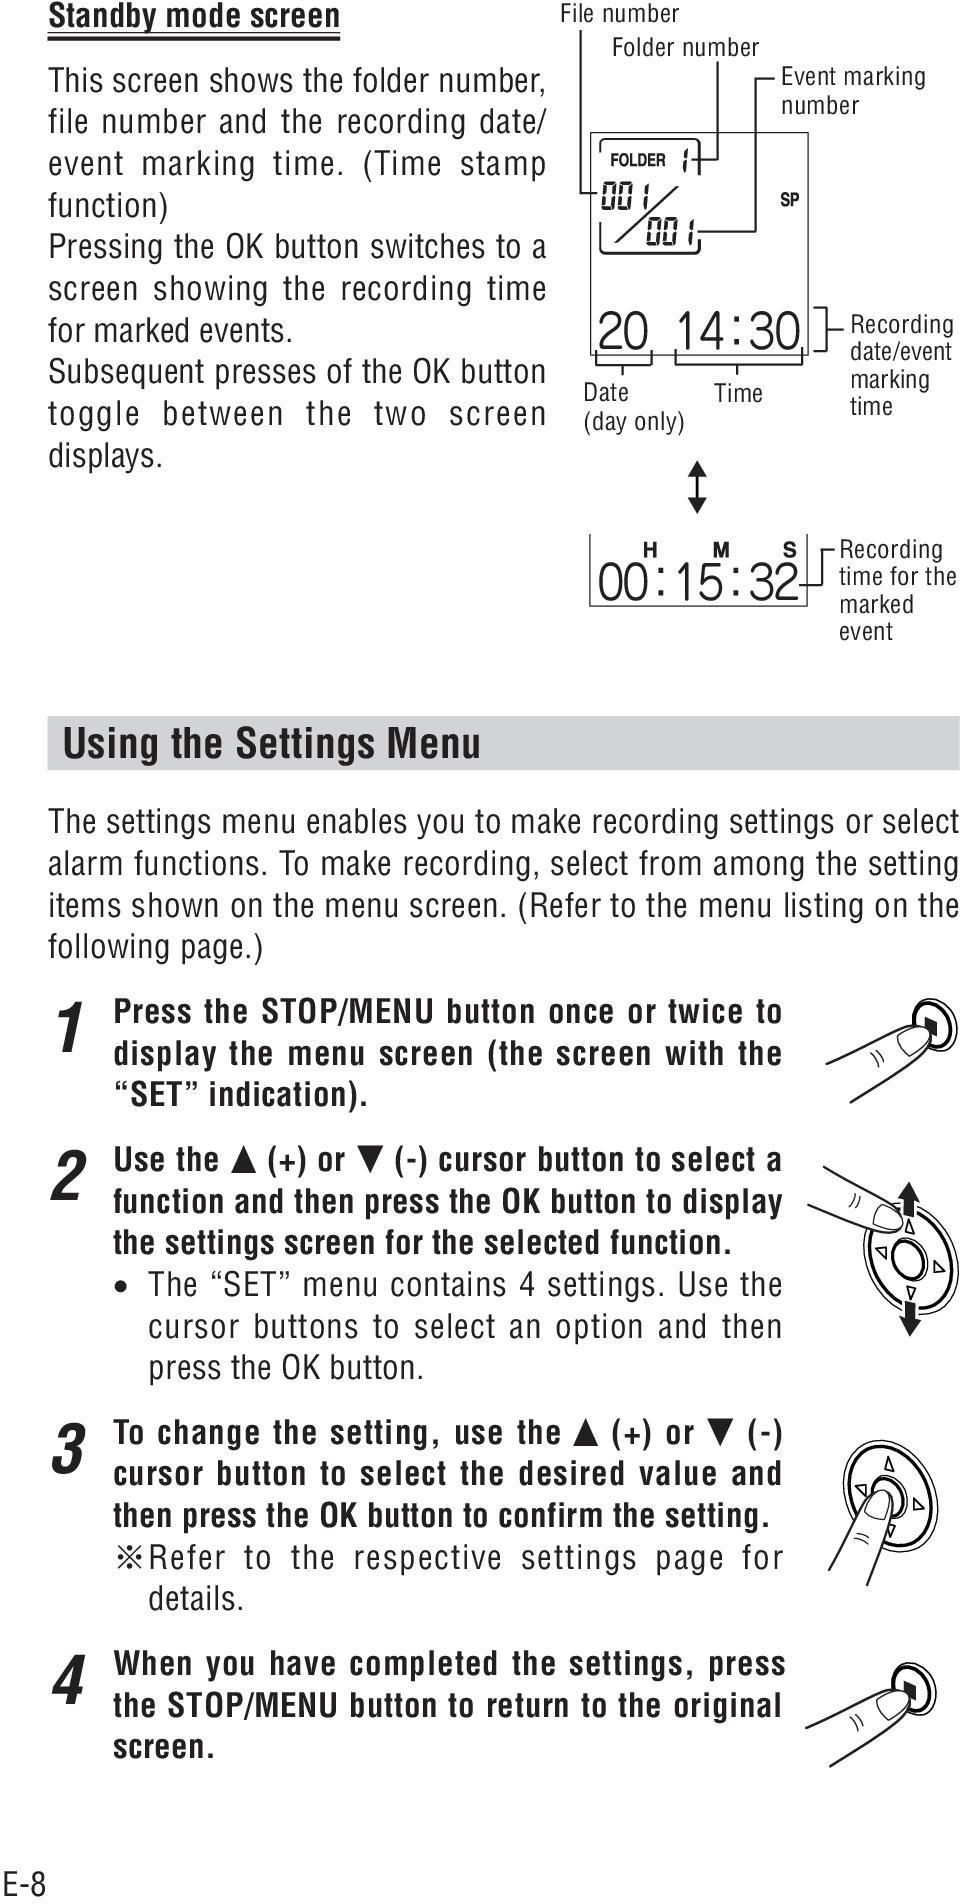 Using the Settings Menu The settings menu enables you to make recording settings or select alarm functions. To make recording, select from among the setting items shown on the menu screen.